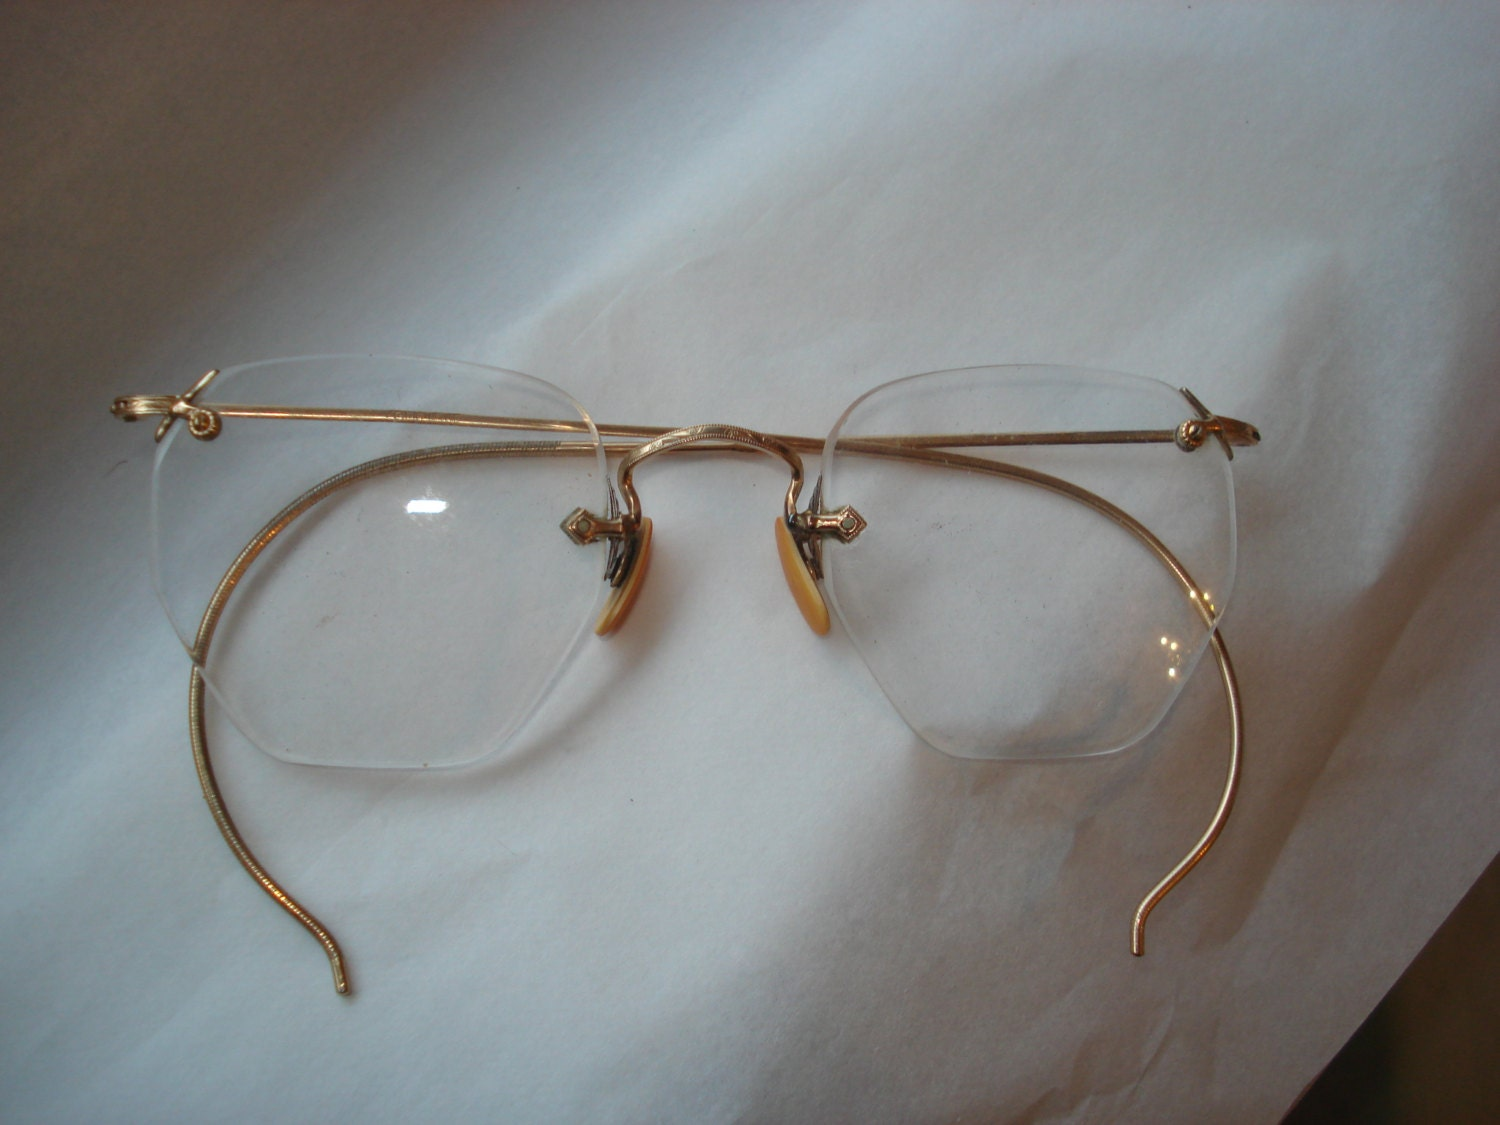 Gold Wire Glasses Frames : Vintage Wireless Rim Eyewear Glasses Gold Wire